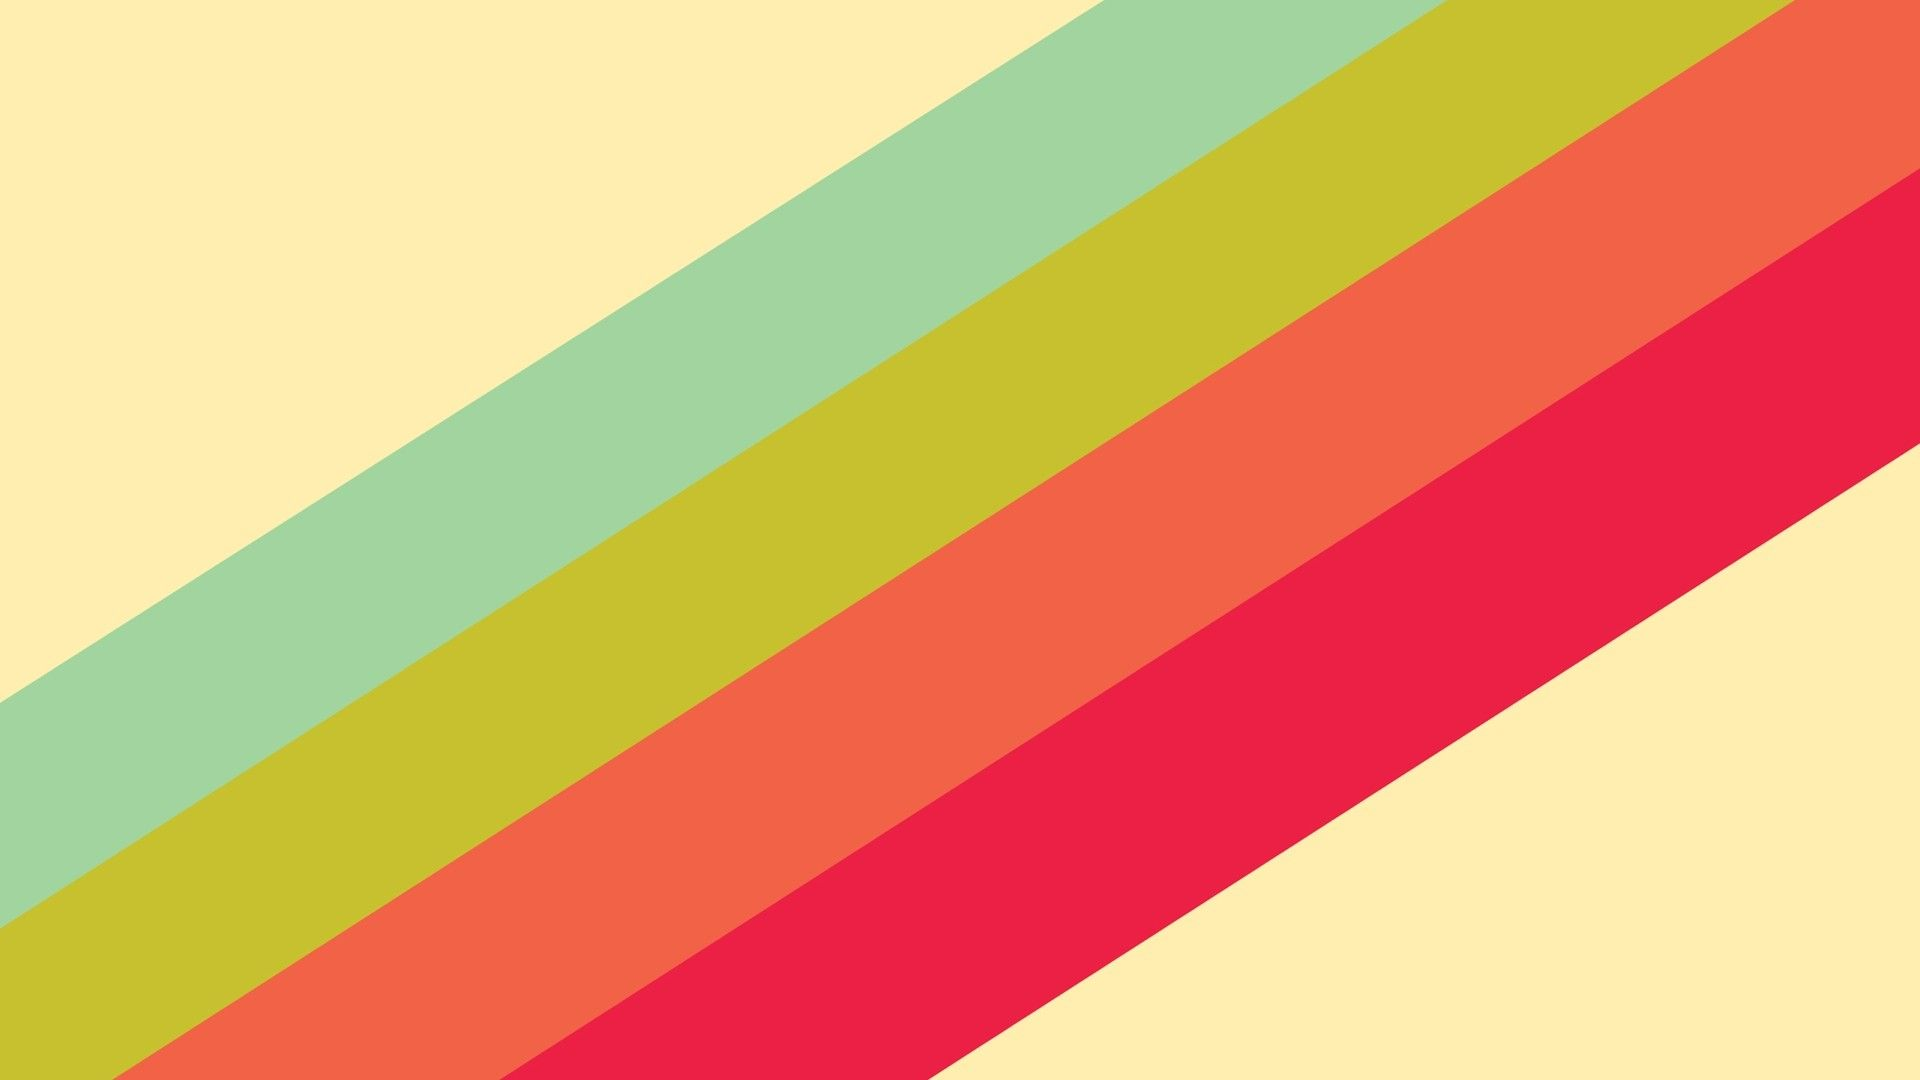 Minimalism Simple Background Material Style Pattern Digital Art Colorful Android L Wallpaper Abstract Abstract Digital Art Wallpaper